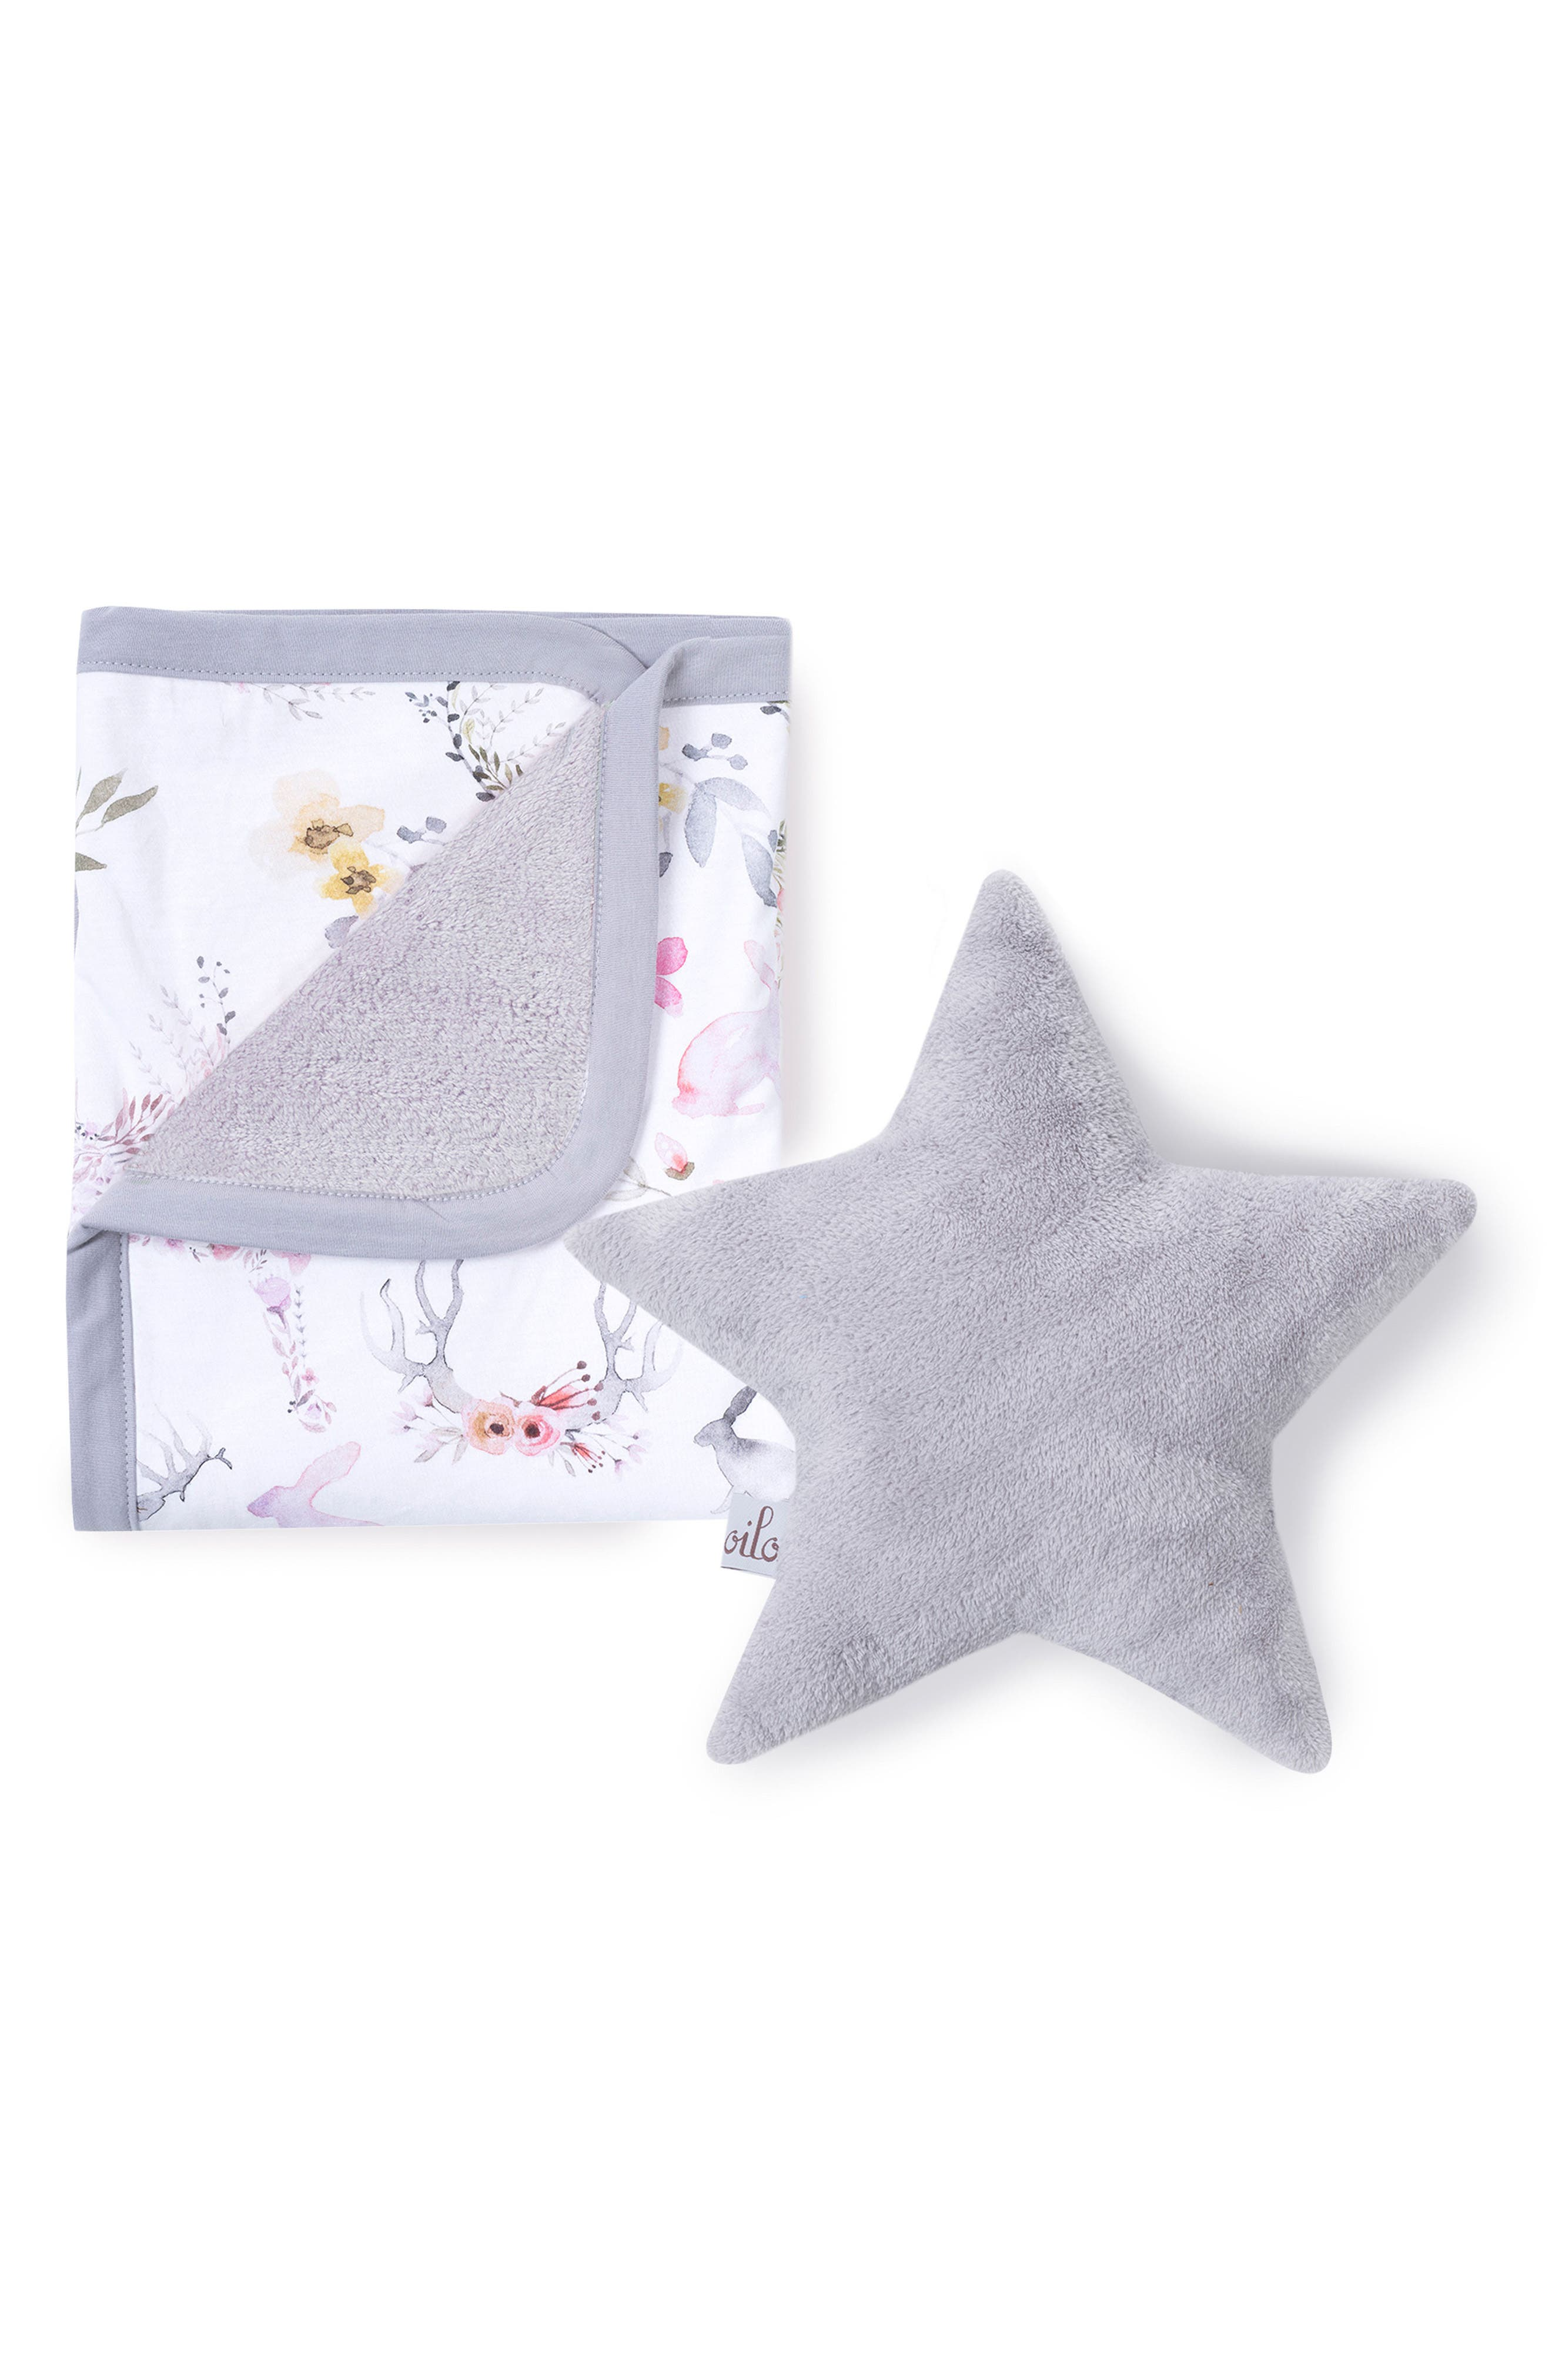 Main Image - Oilo Fawn Cuddle Blanket & Star Pillow Set